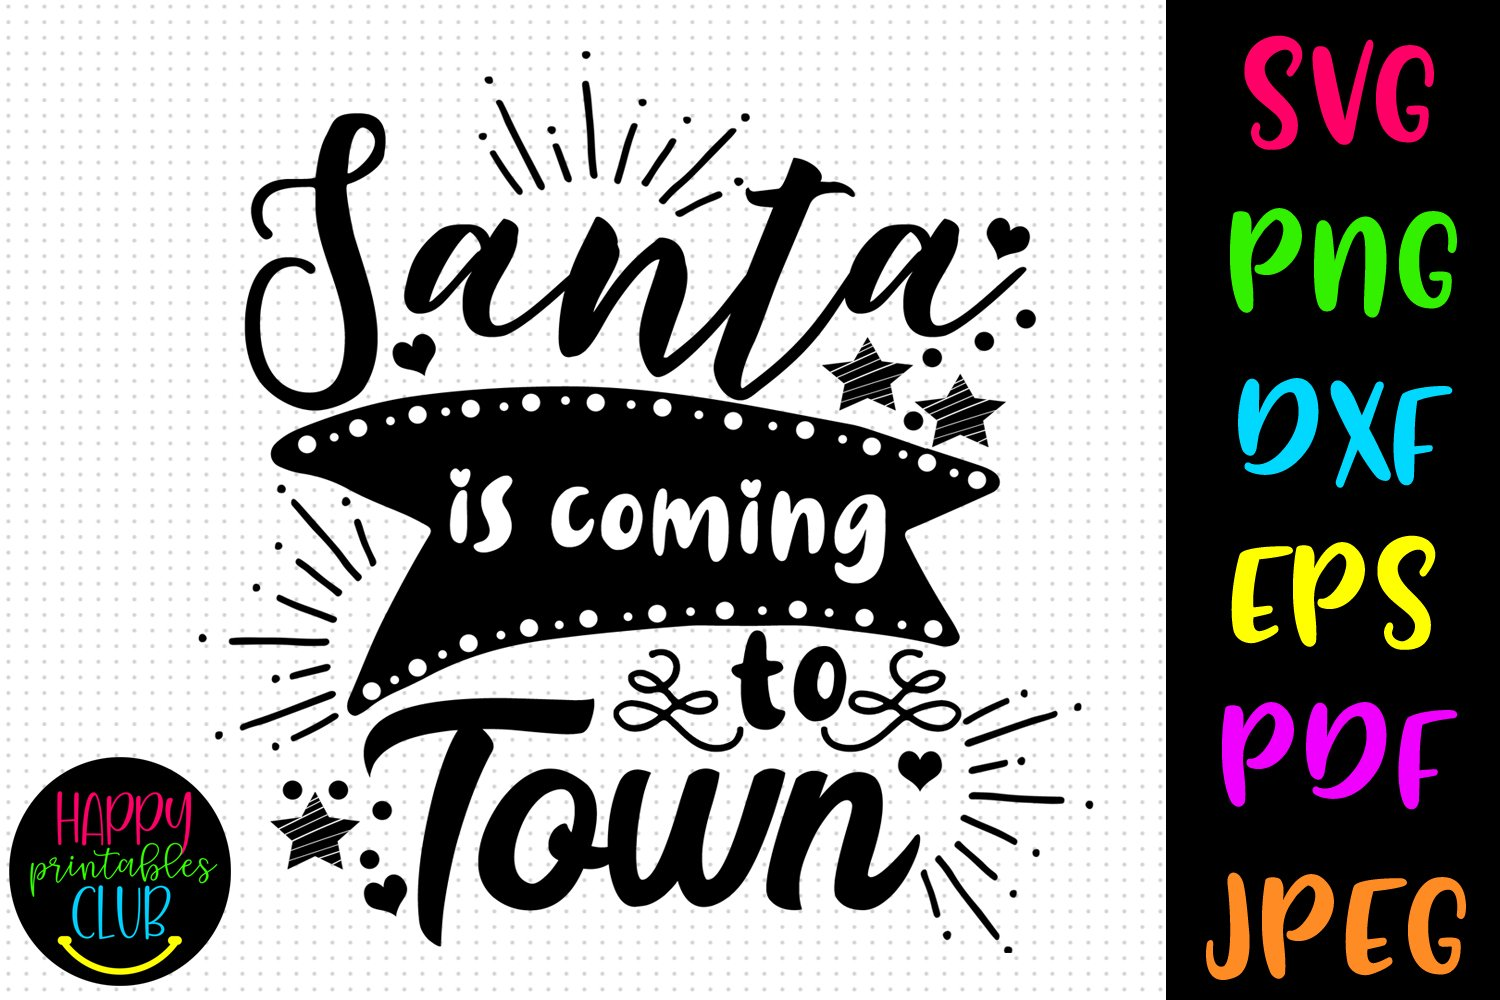 Santa Is Coming To Town Svg Dxf Eps I Christmas Svg Dxf Png 789909 Cut Files Design Bundles